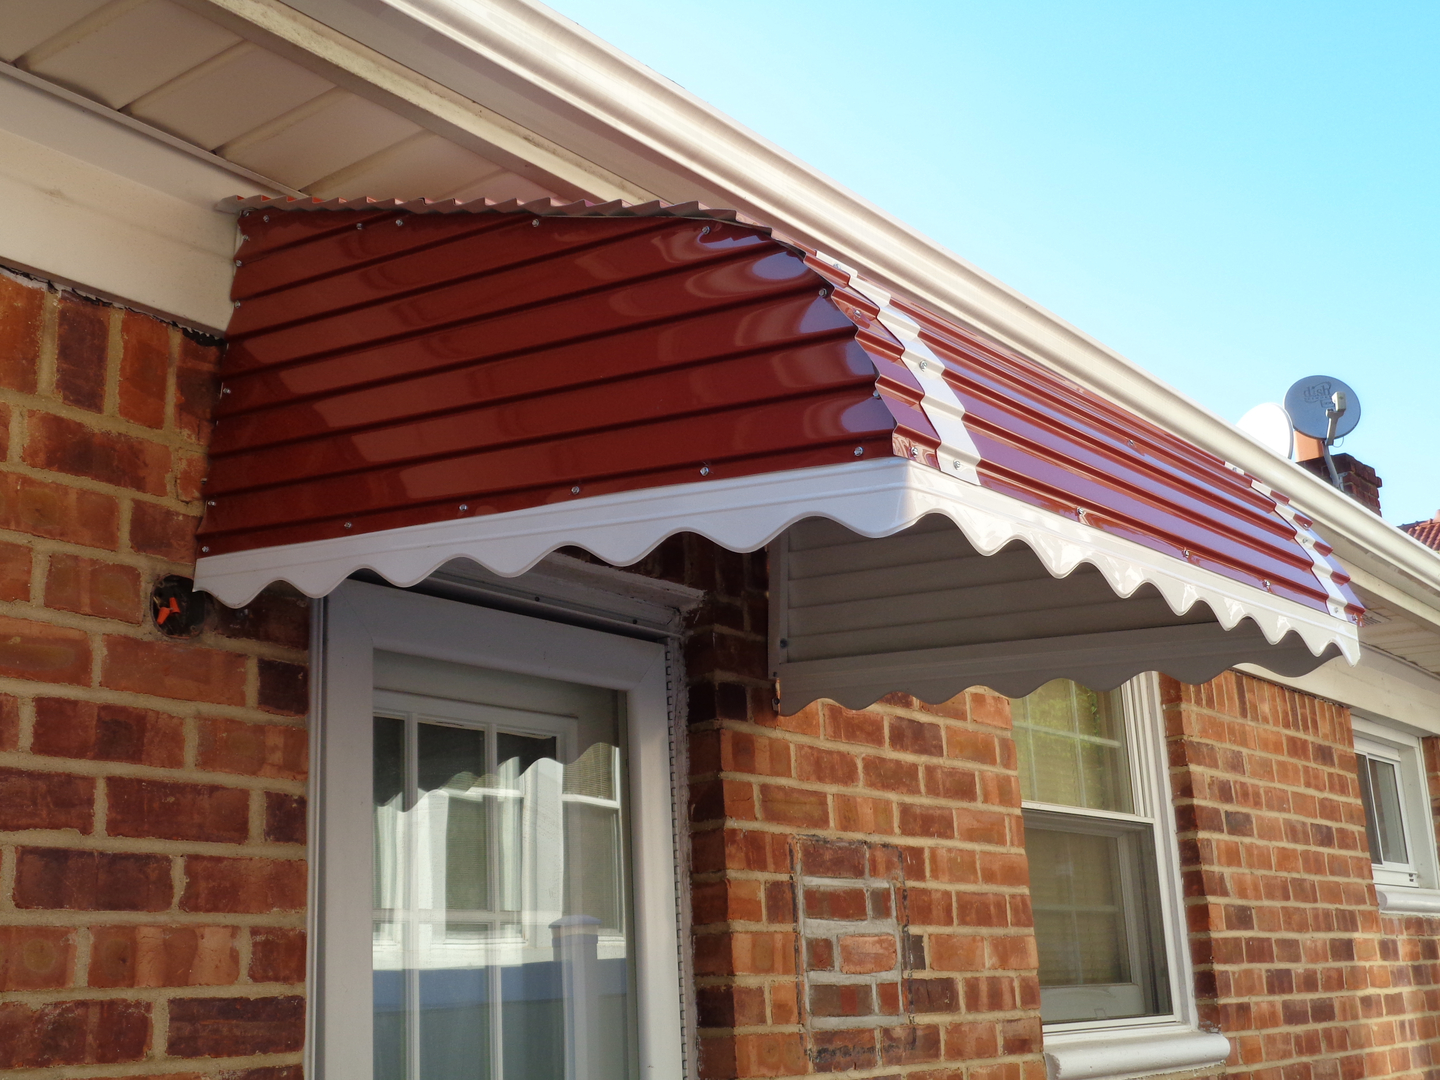 NYC Home Awnings Offers Unbeatable Service And Pricing On Aluminum For Homes Has Been Serving Owners In New Yorks 5 Boroughs